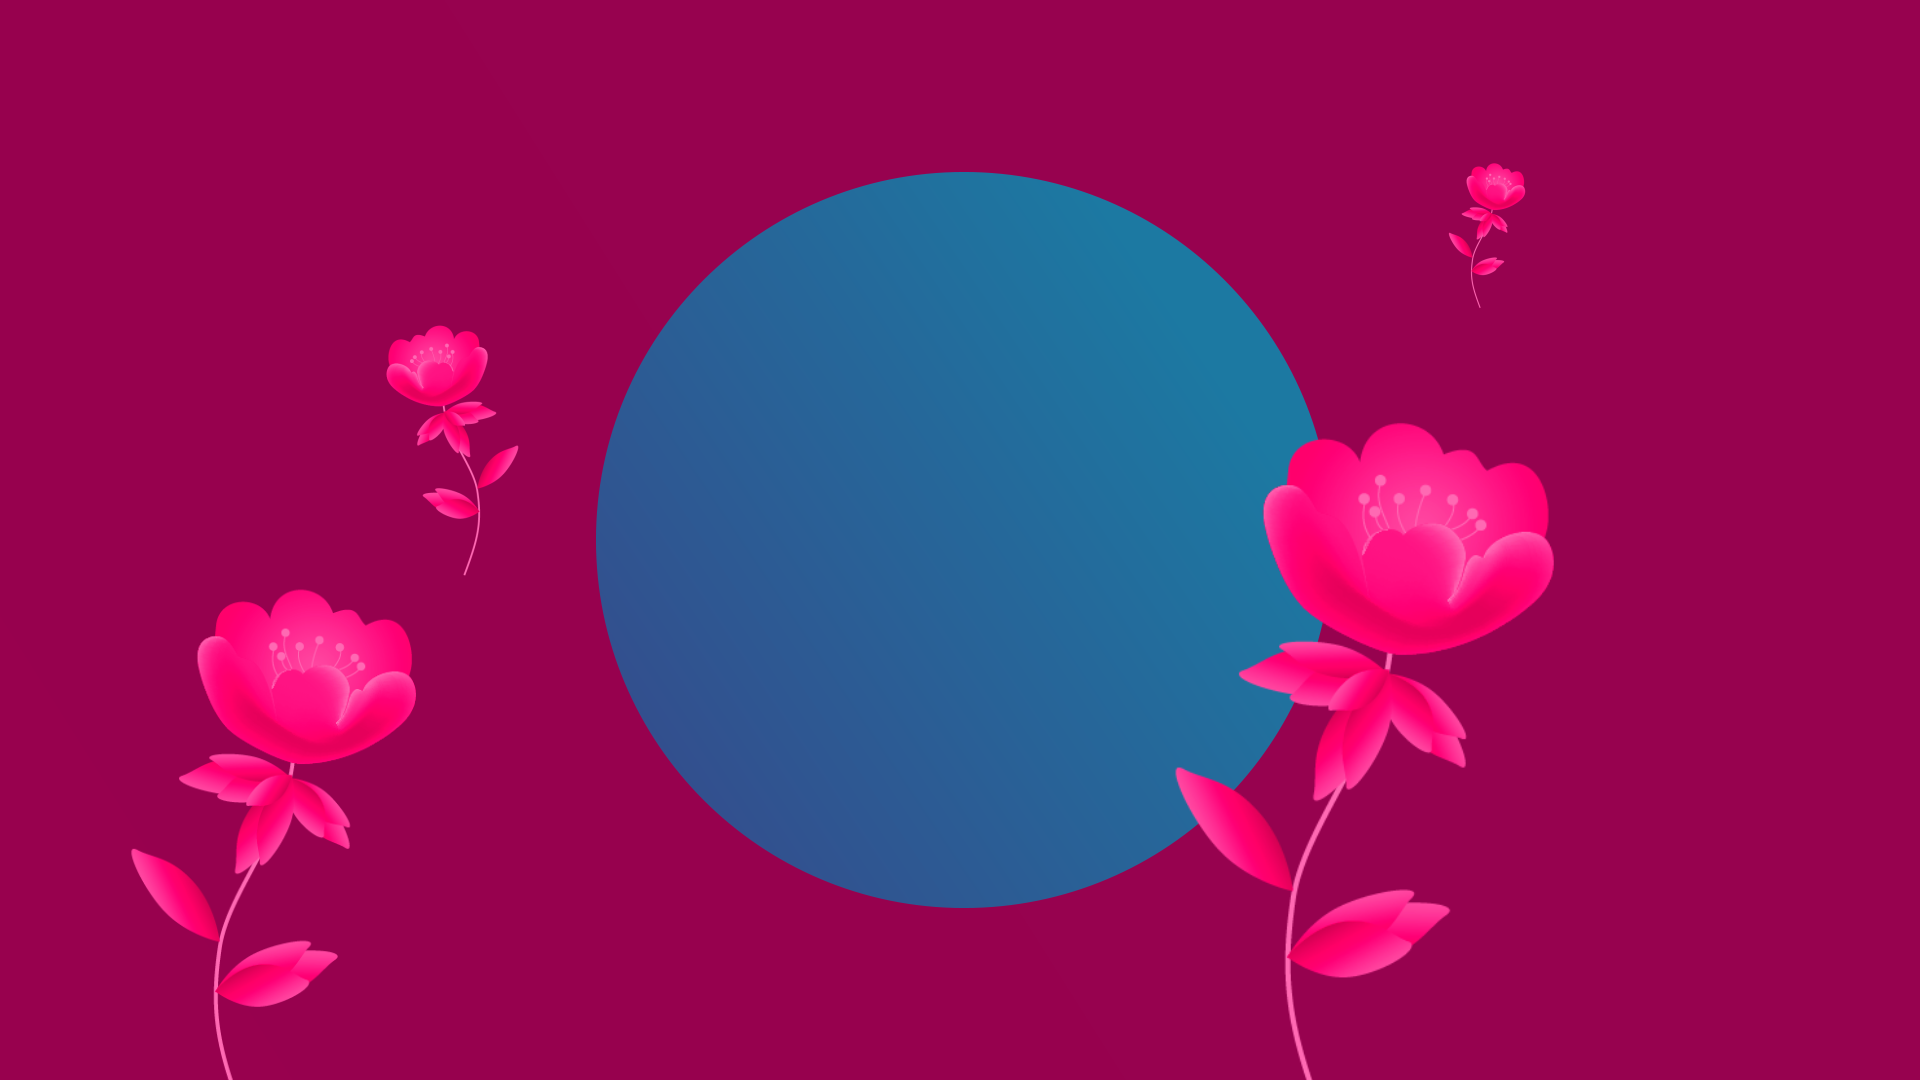 Search engine marketing, inner circle of digital marketing, blue circle on purple background with growing pink flowers.